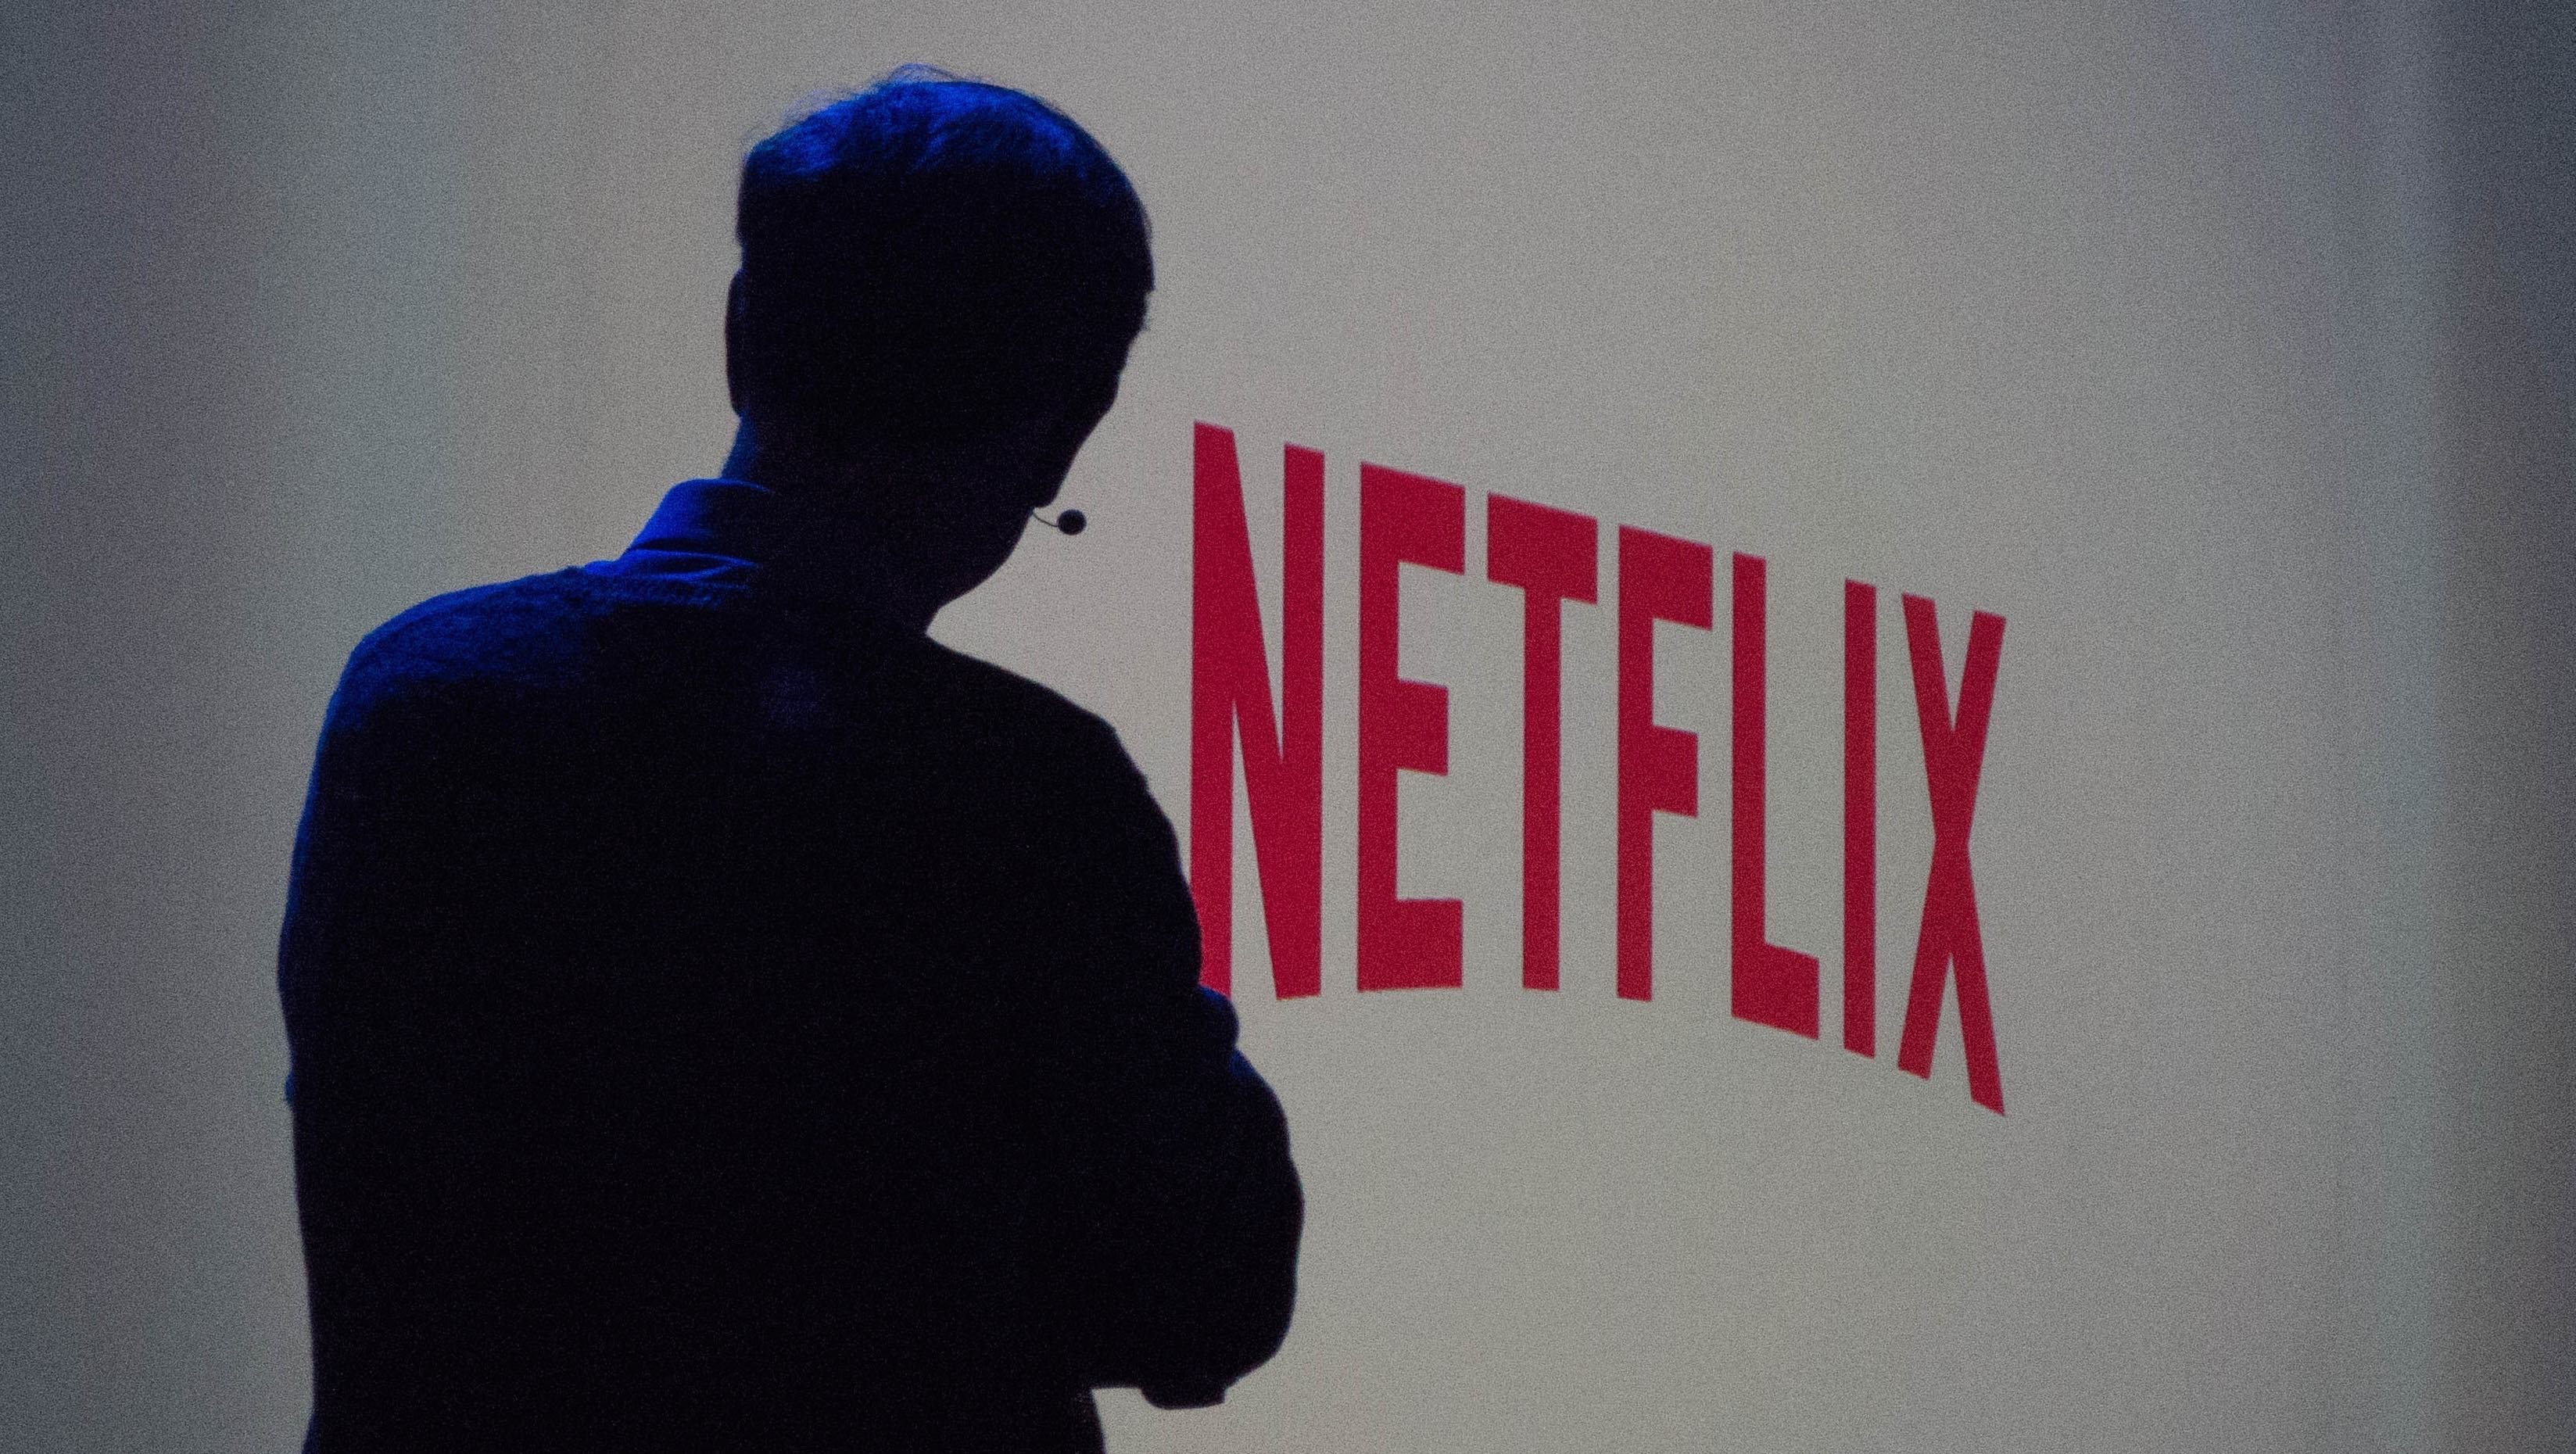 How Netflix Monitors Your Viewing Habits